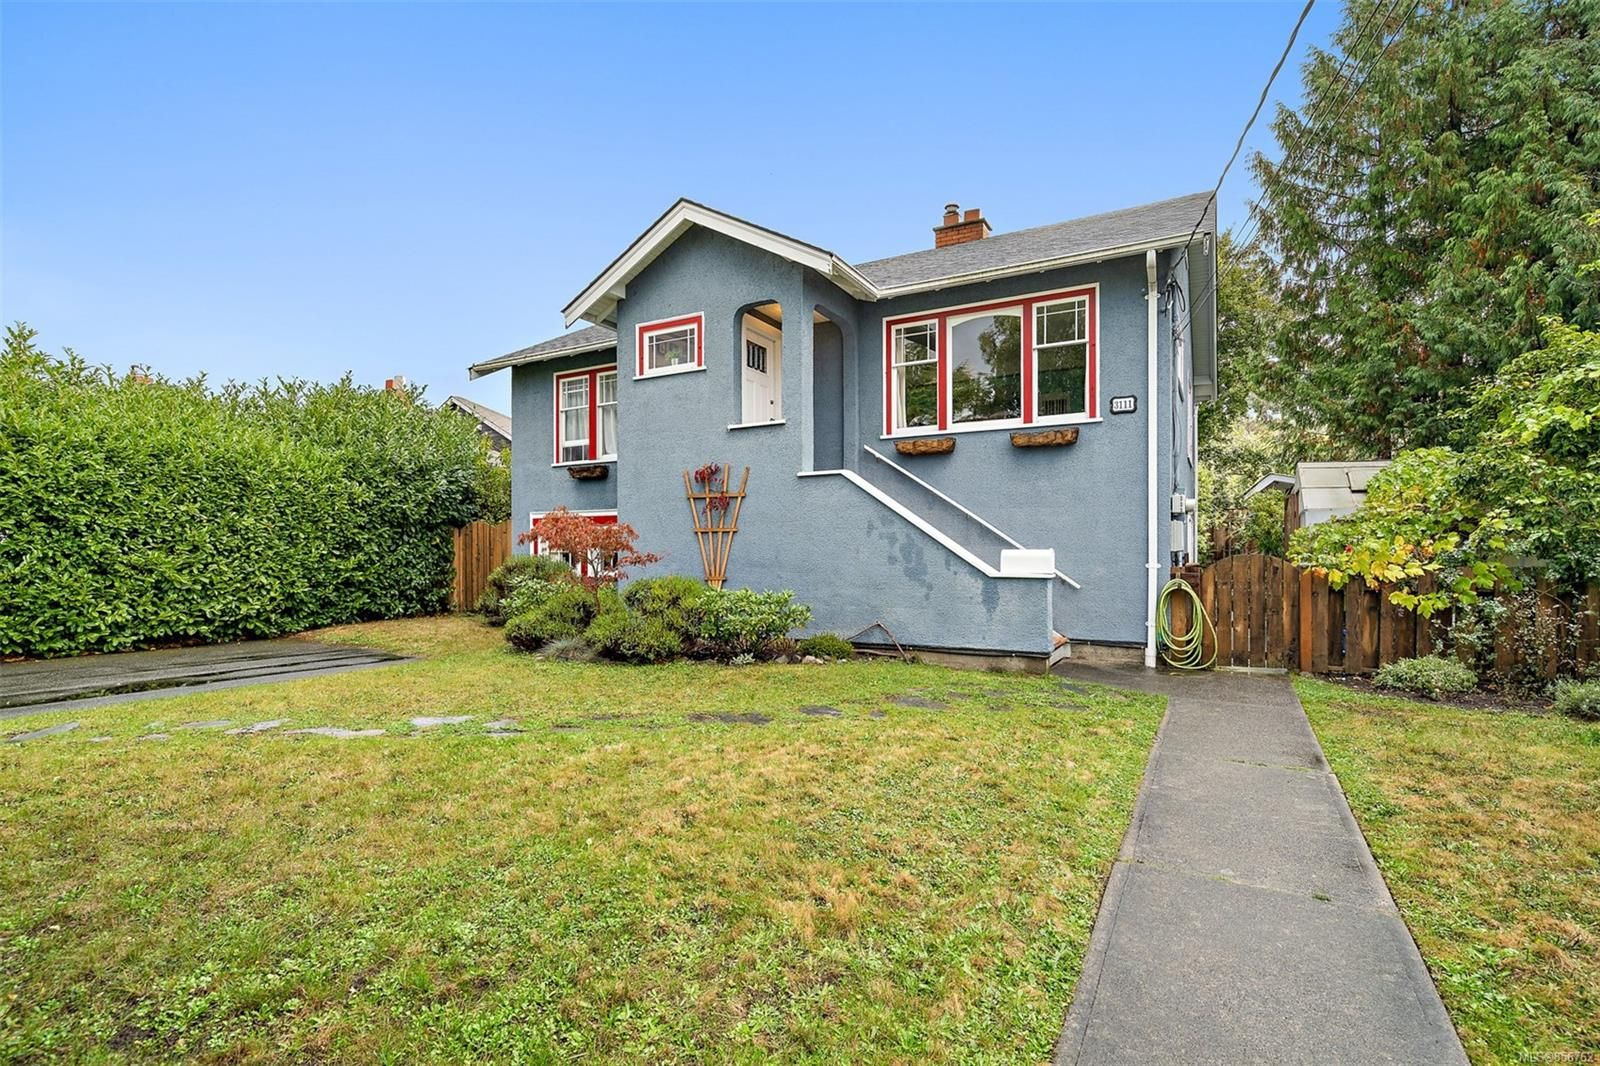 Main Photo: 3111 Service St in : SE Camosun House for sale (Saanich East)  : MLS®# 856762